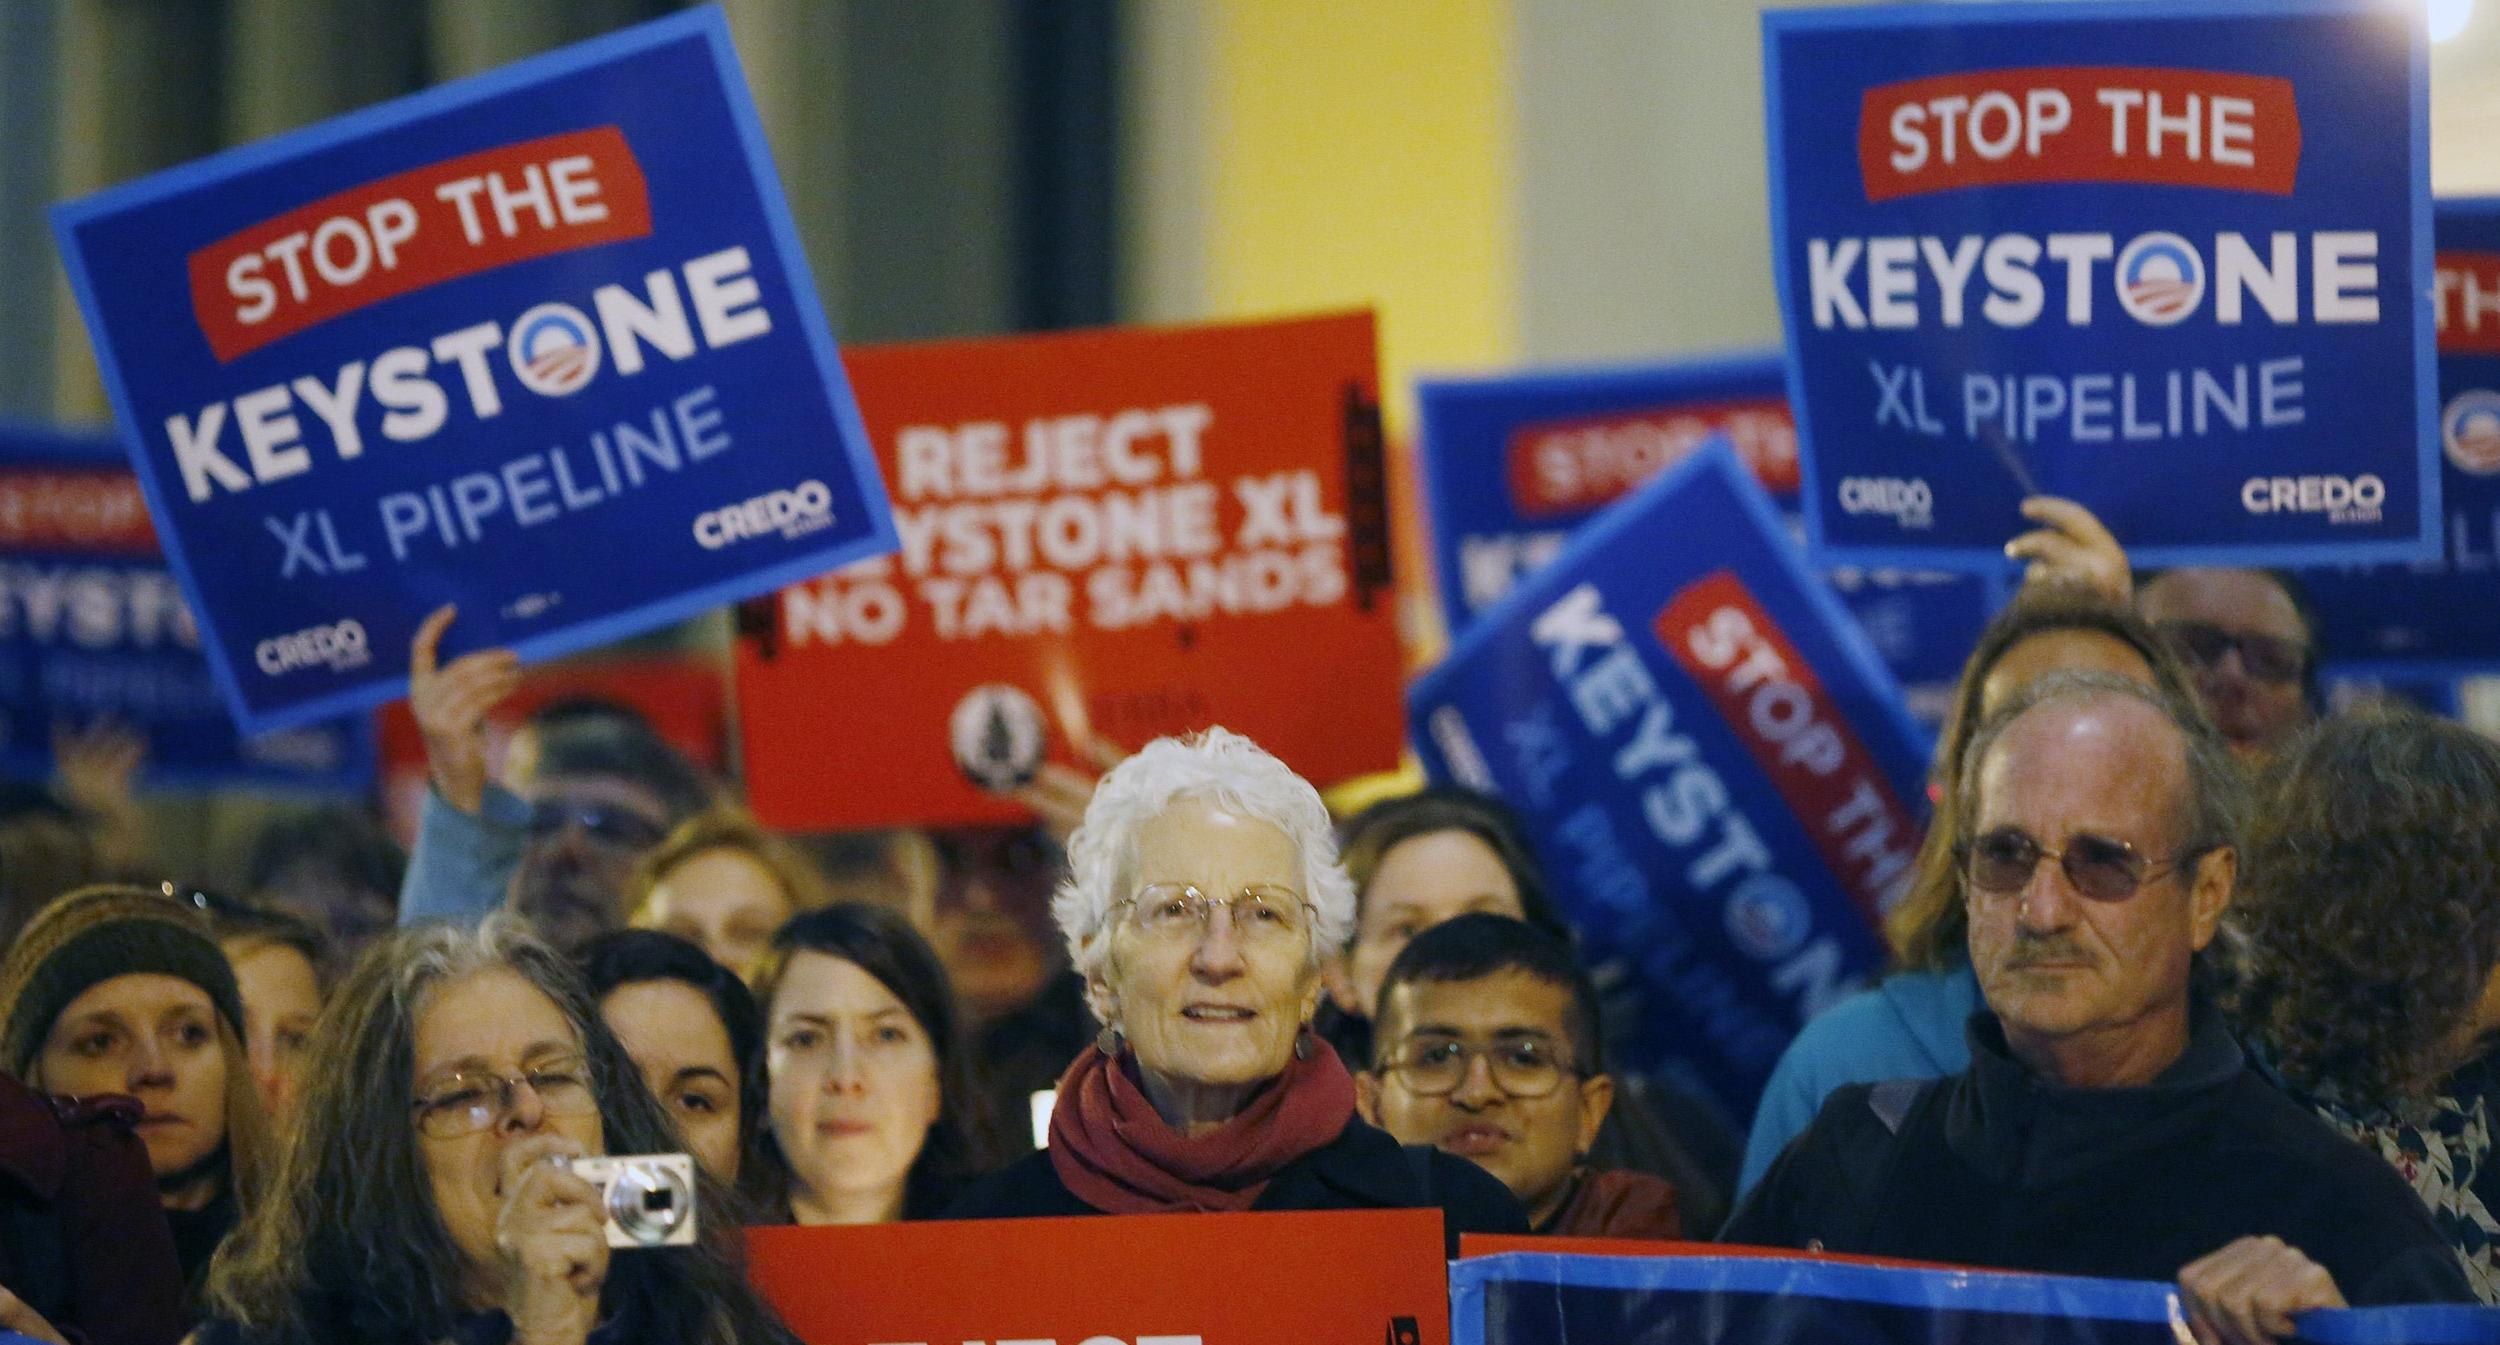 Image: Demonstrators protest against Keystone XL oil pipeline in San Francisco